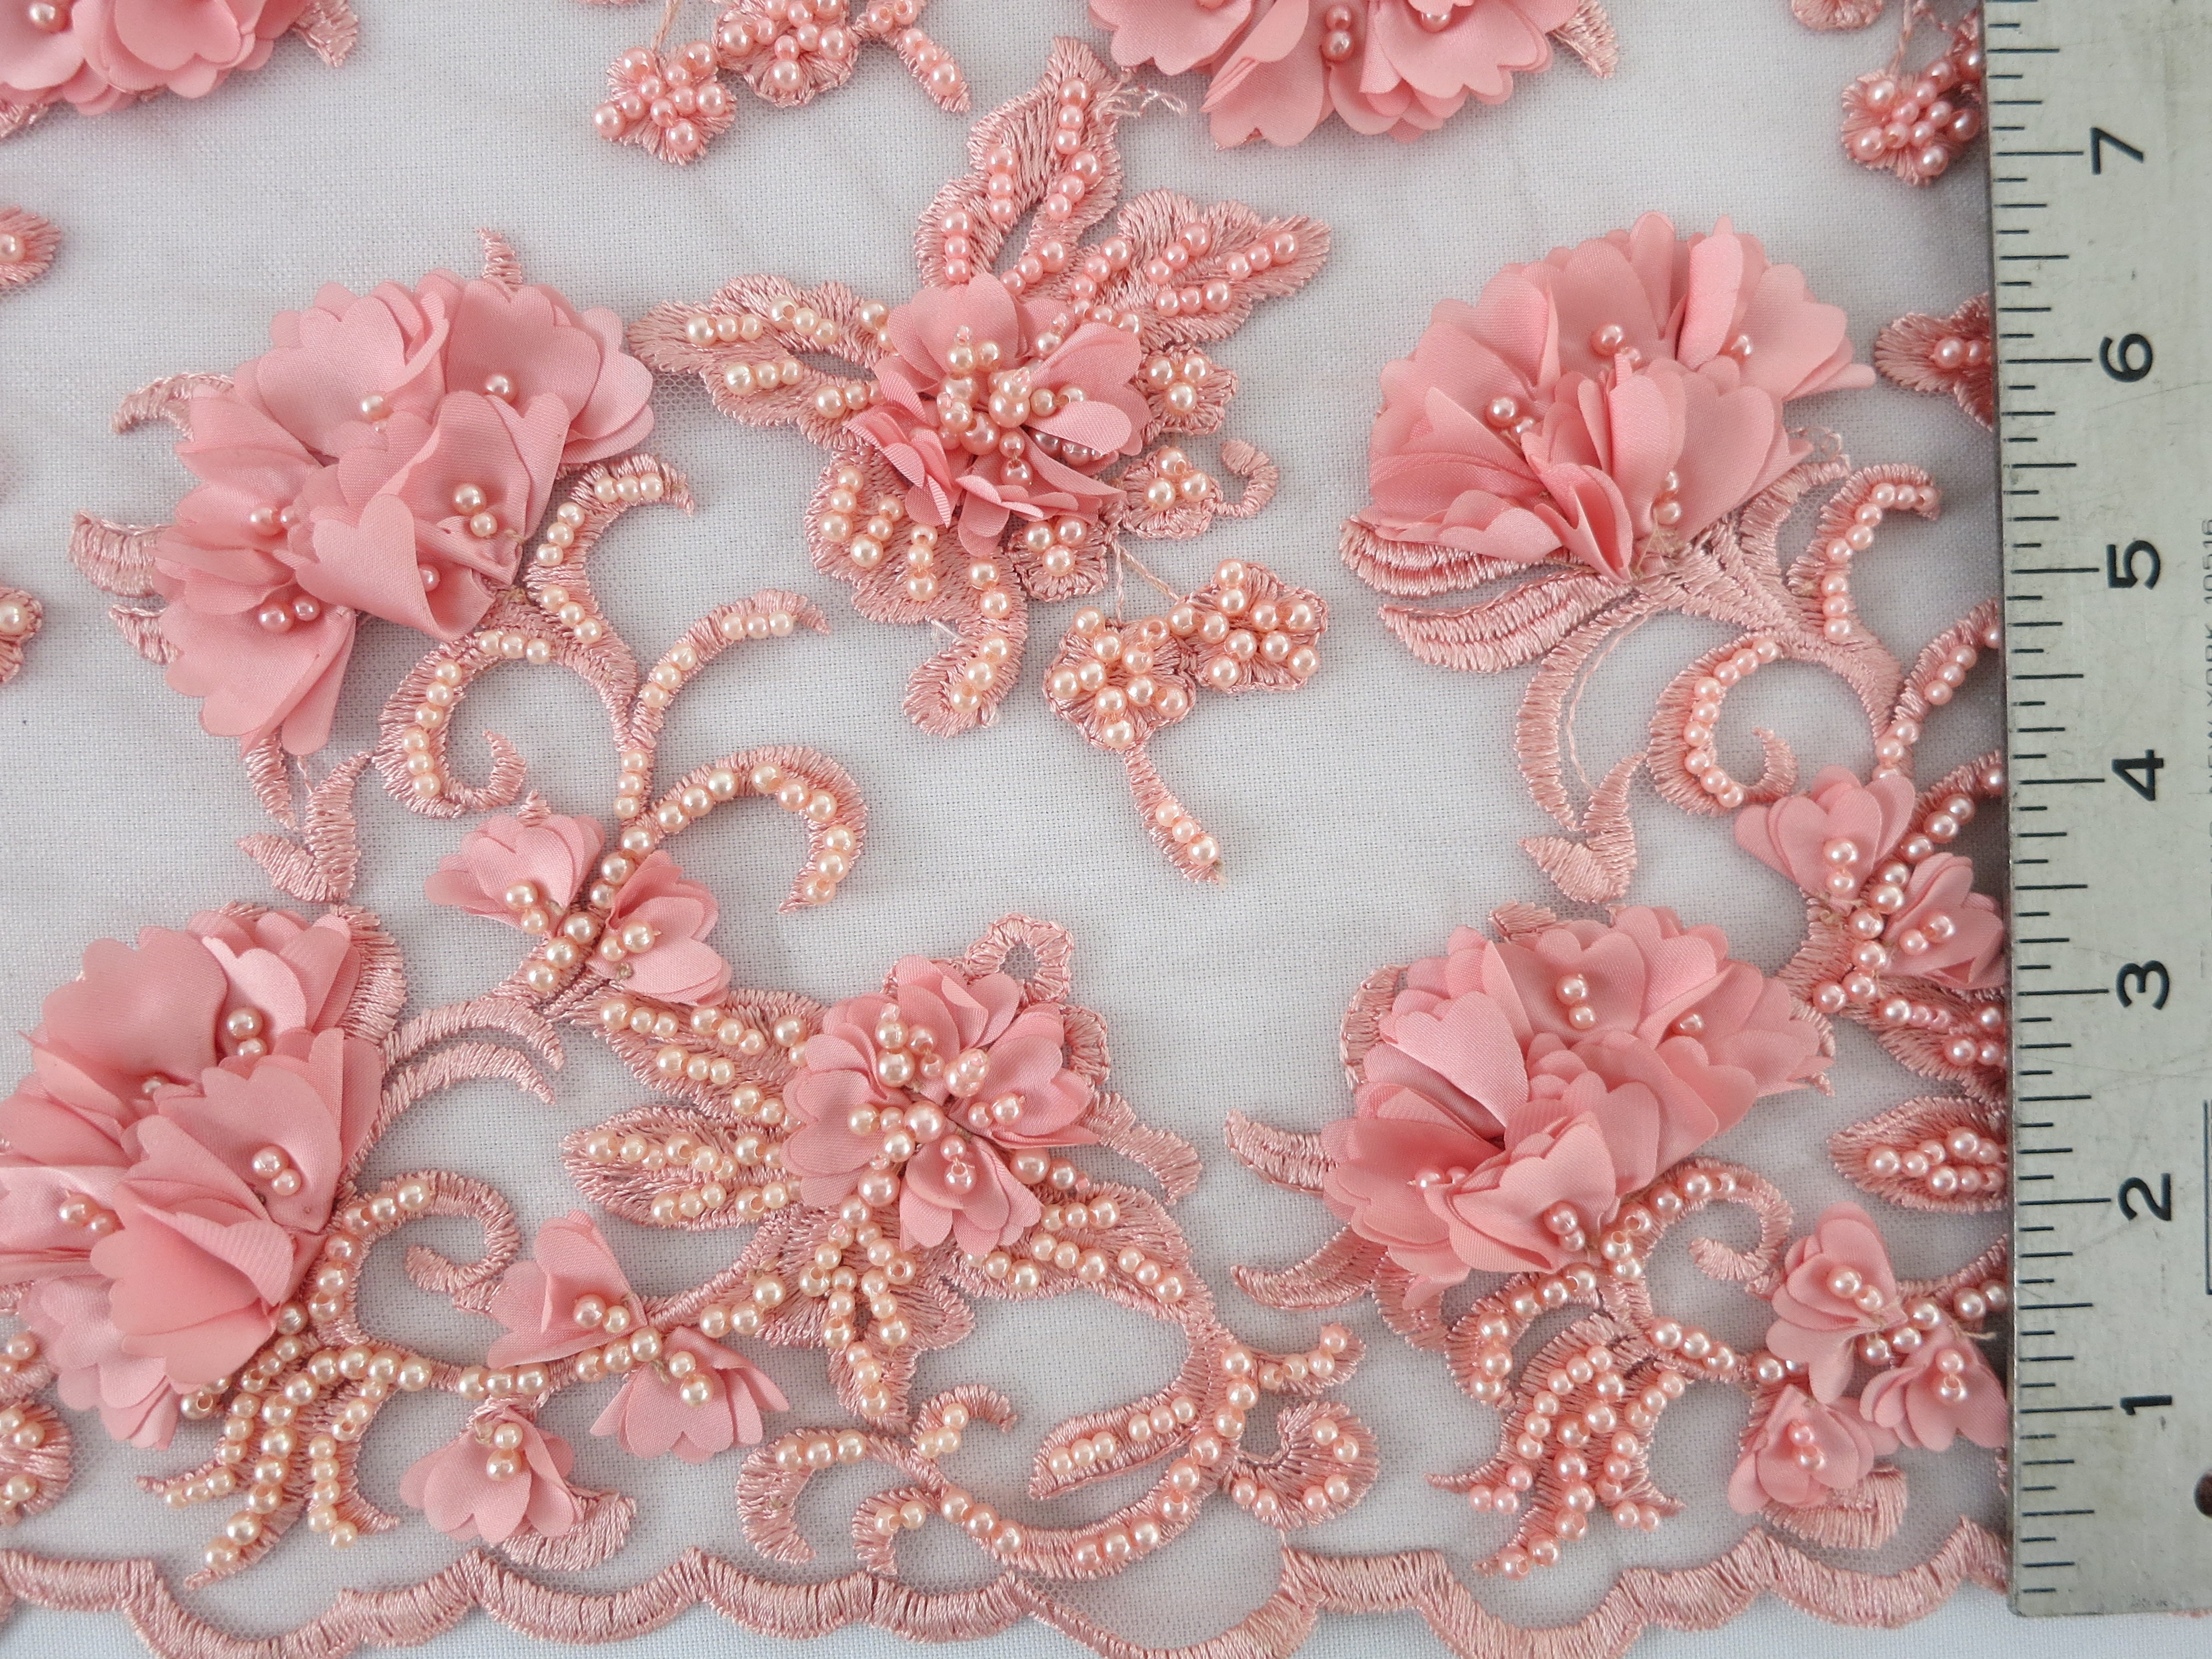 Coral floral beaded embroidered lace mesh fabric